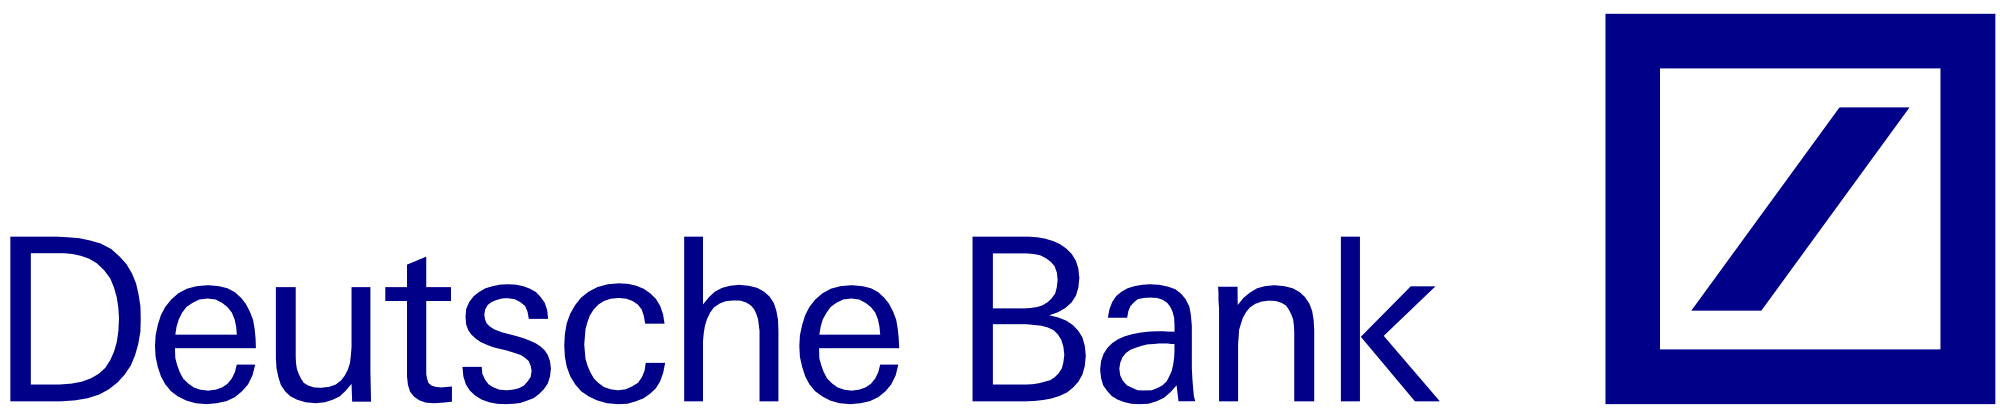 Deutsche Bank Logo - File:Deutsche Bank logo.svg - Wikimedia Commons